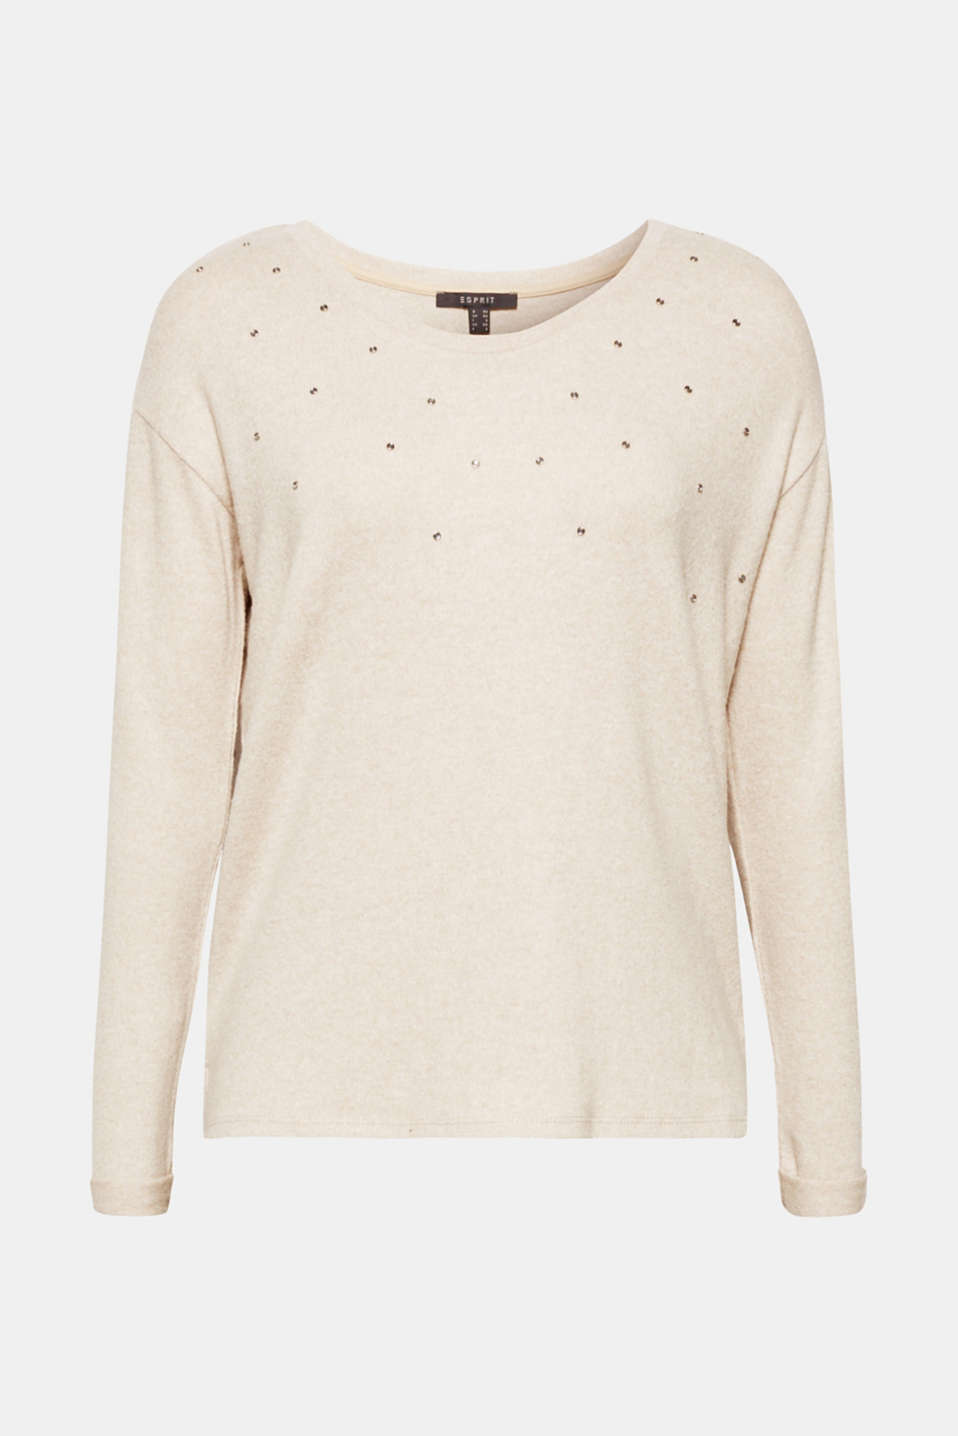 The melange brushed effect and glittering gemstones make this casual long sleeve top with a V-neckline and high-low hem so stylish!